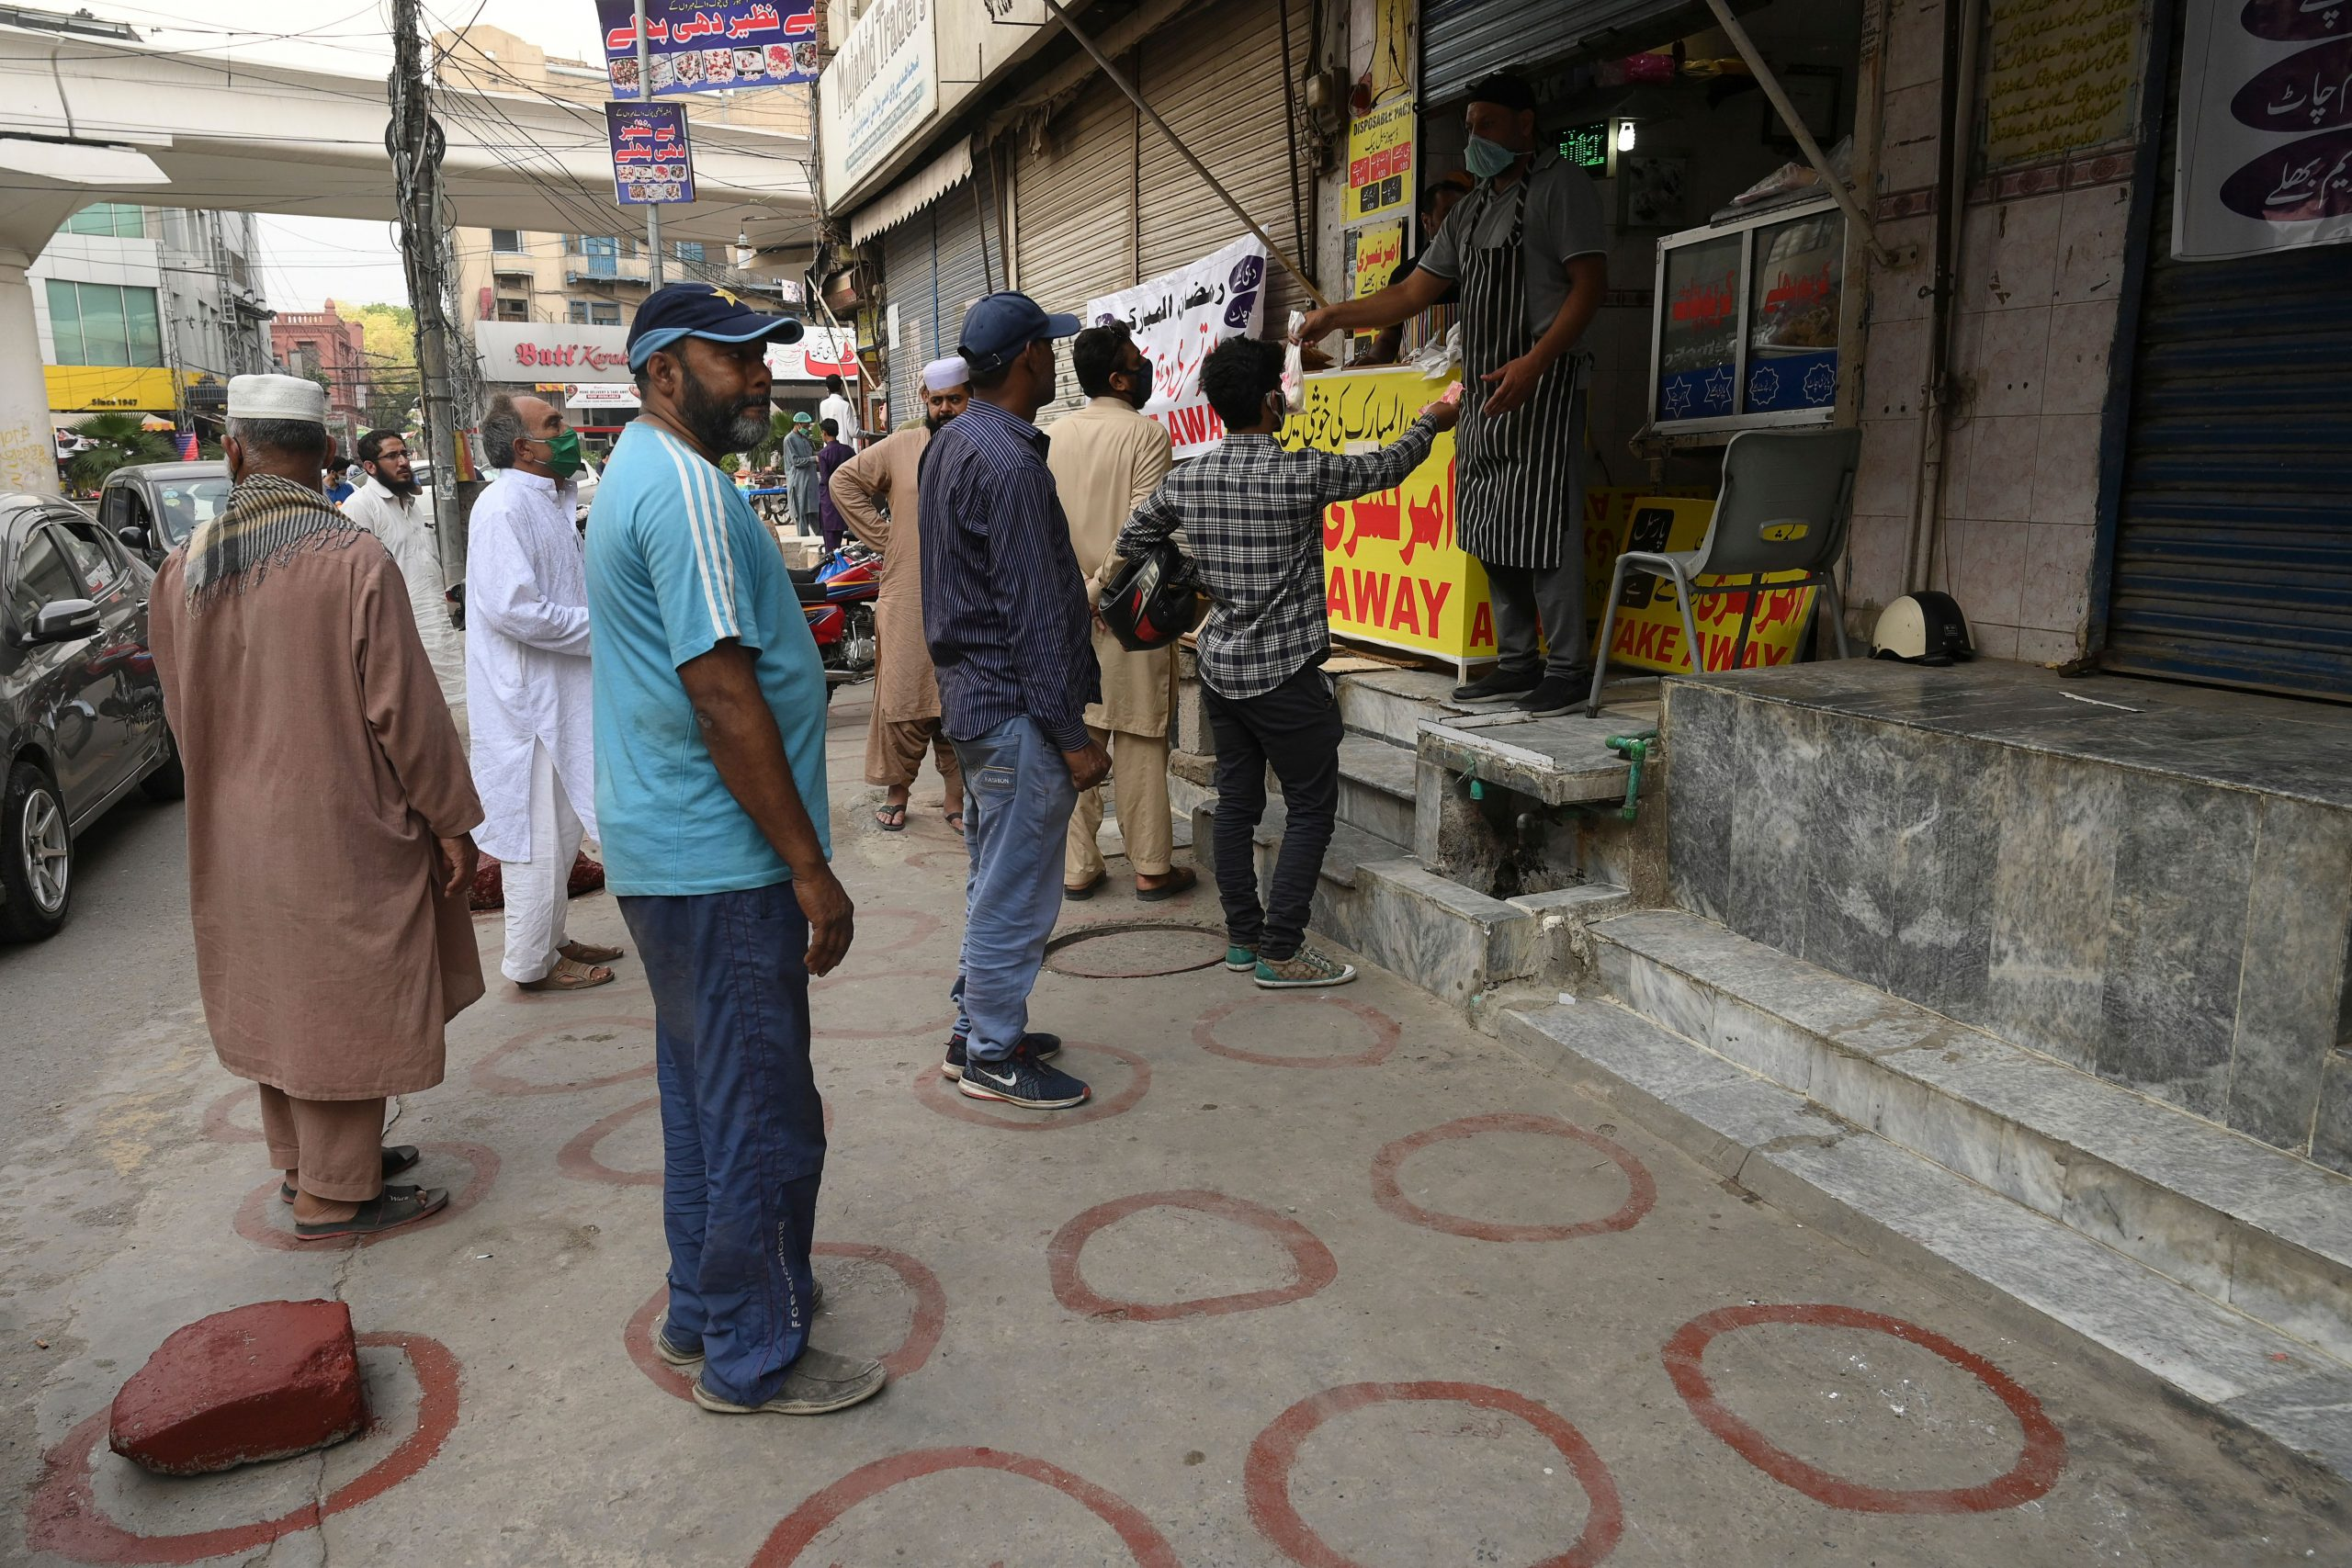 Muslim people maintaining social distance stand in line to buy food for Iftar on the first day of the Muslim holy month of Ramadan in Lahore on April 25, 2020. (Photo by ARIF ALI / AFP)